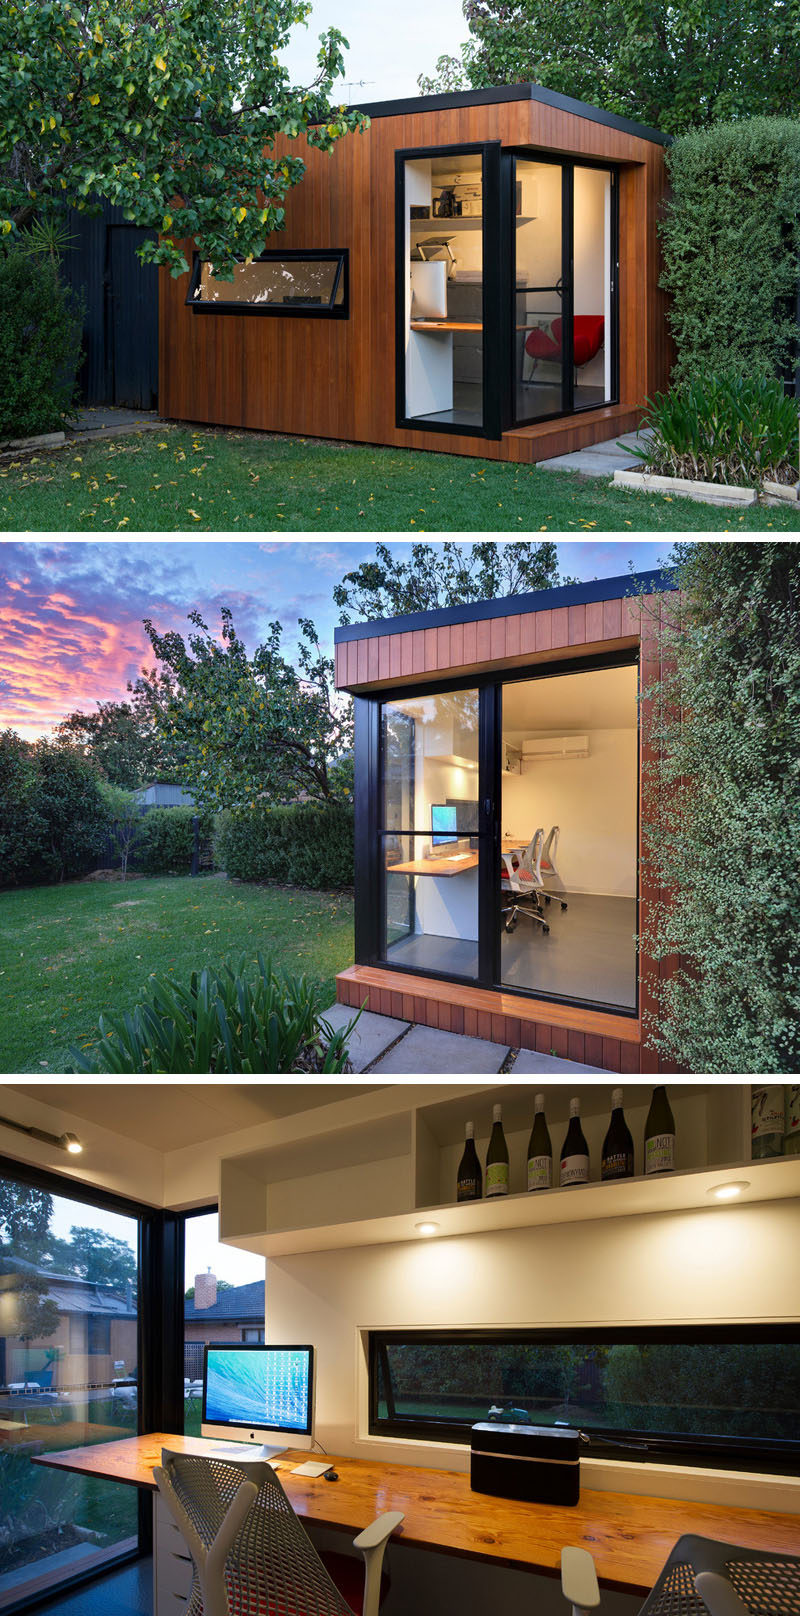 Inspirational Backyard Offices Studios And Guest Houses - Prefab backyard office